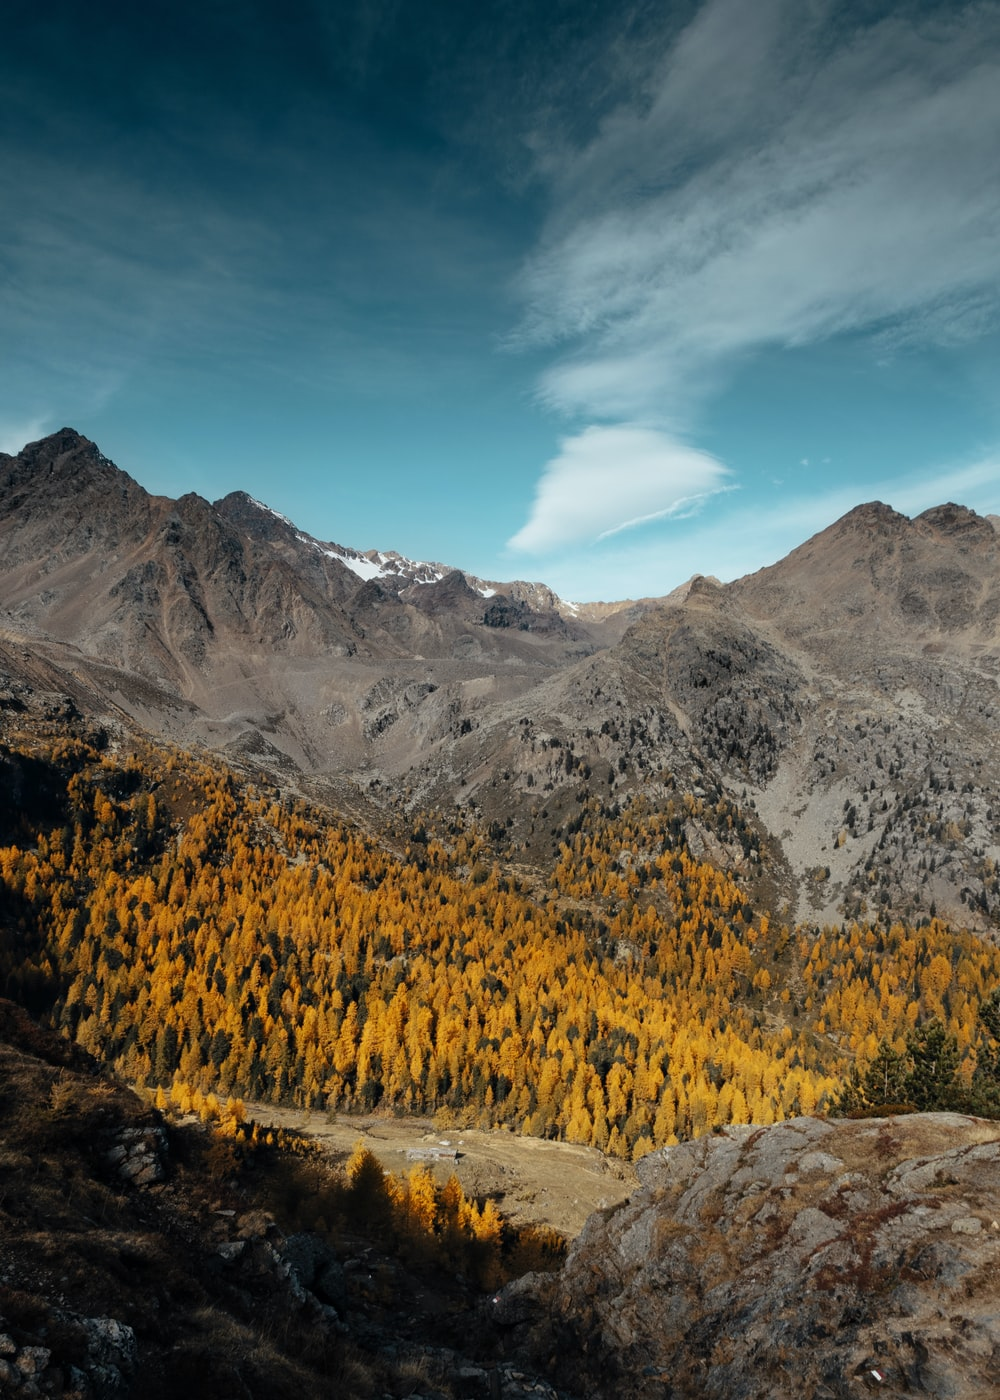 trees surrounded by mountains